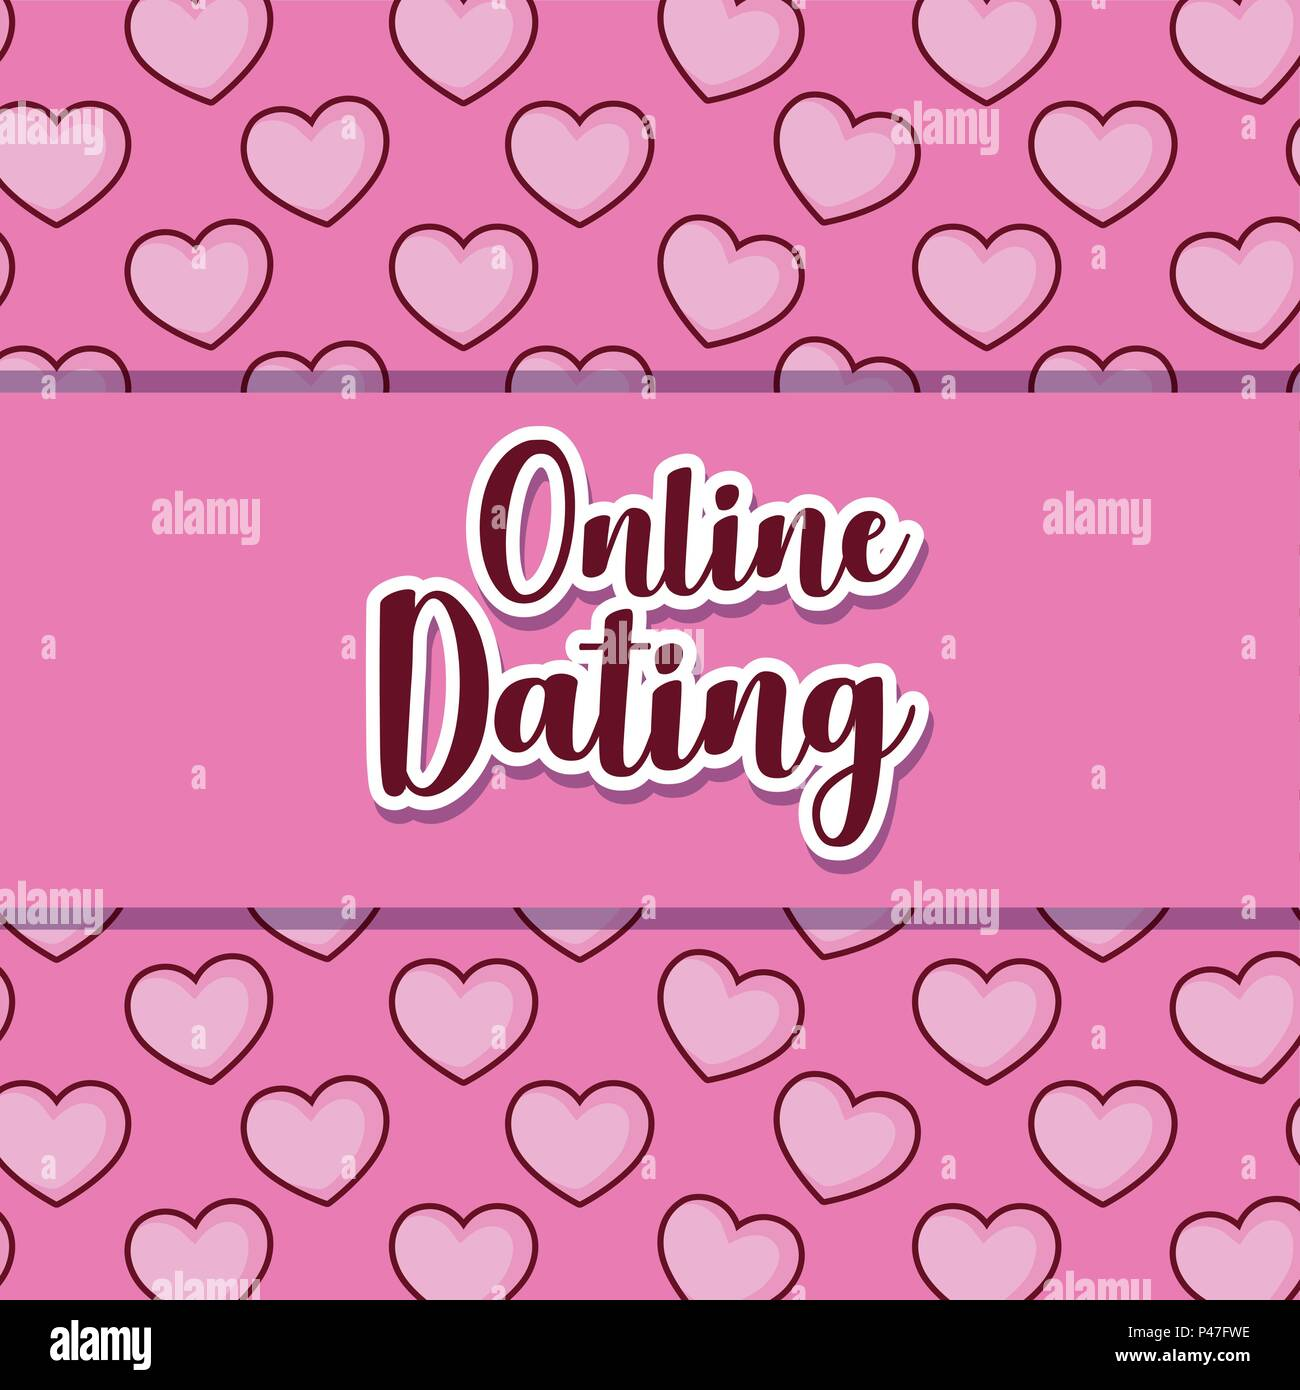 online dating patterns